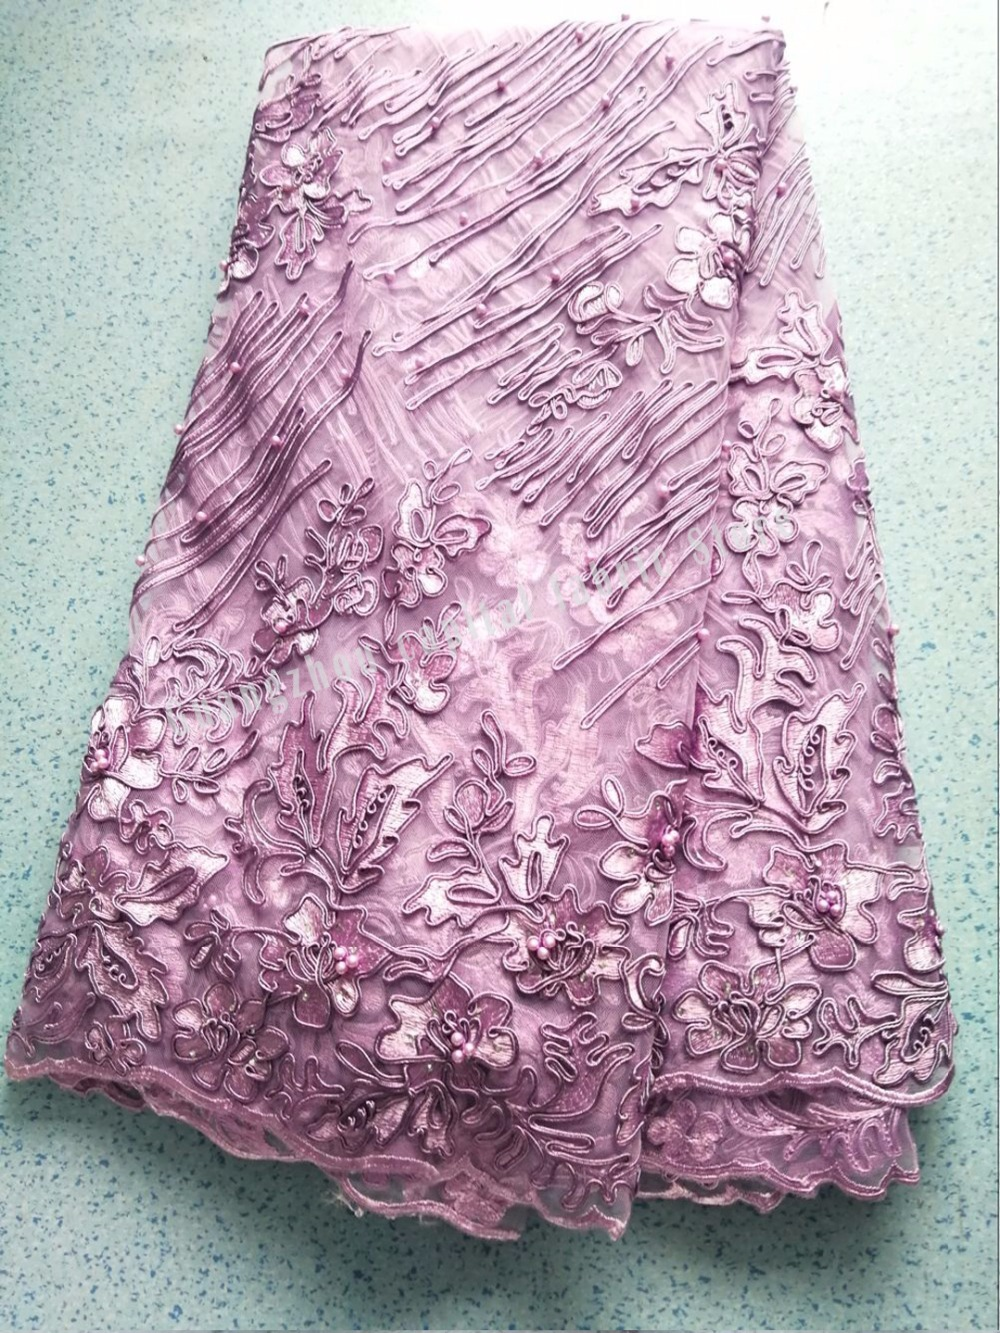 French new lace fabric, with fine beads embroidered fabric, fashionable and beautiful dressFrench new lace fabric, with fine beads embroidered fabric, fashionable and beautiful dress